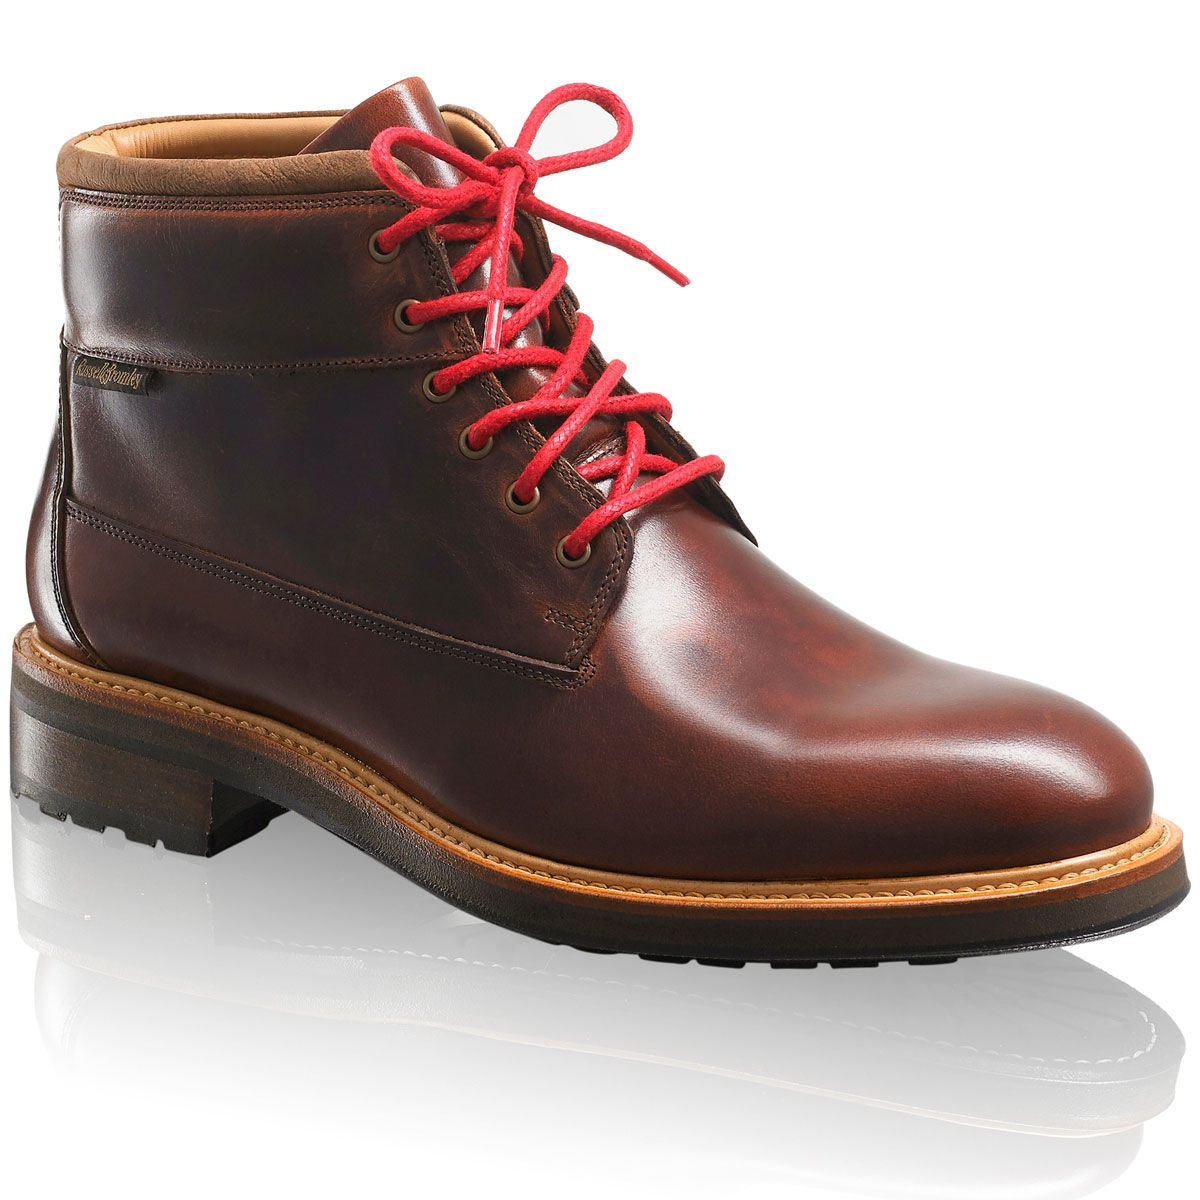 russell and bromley mens boots